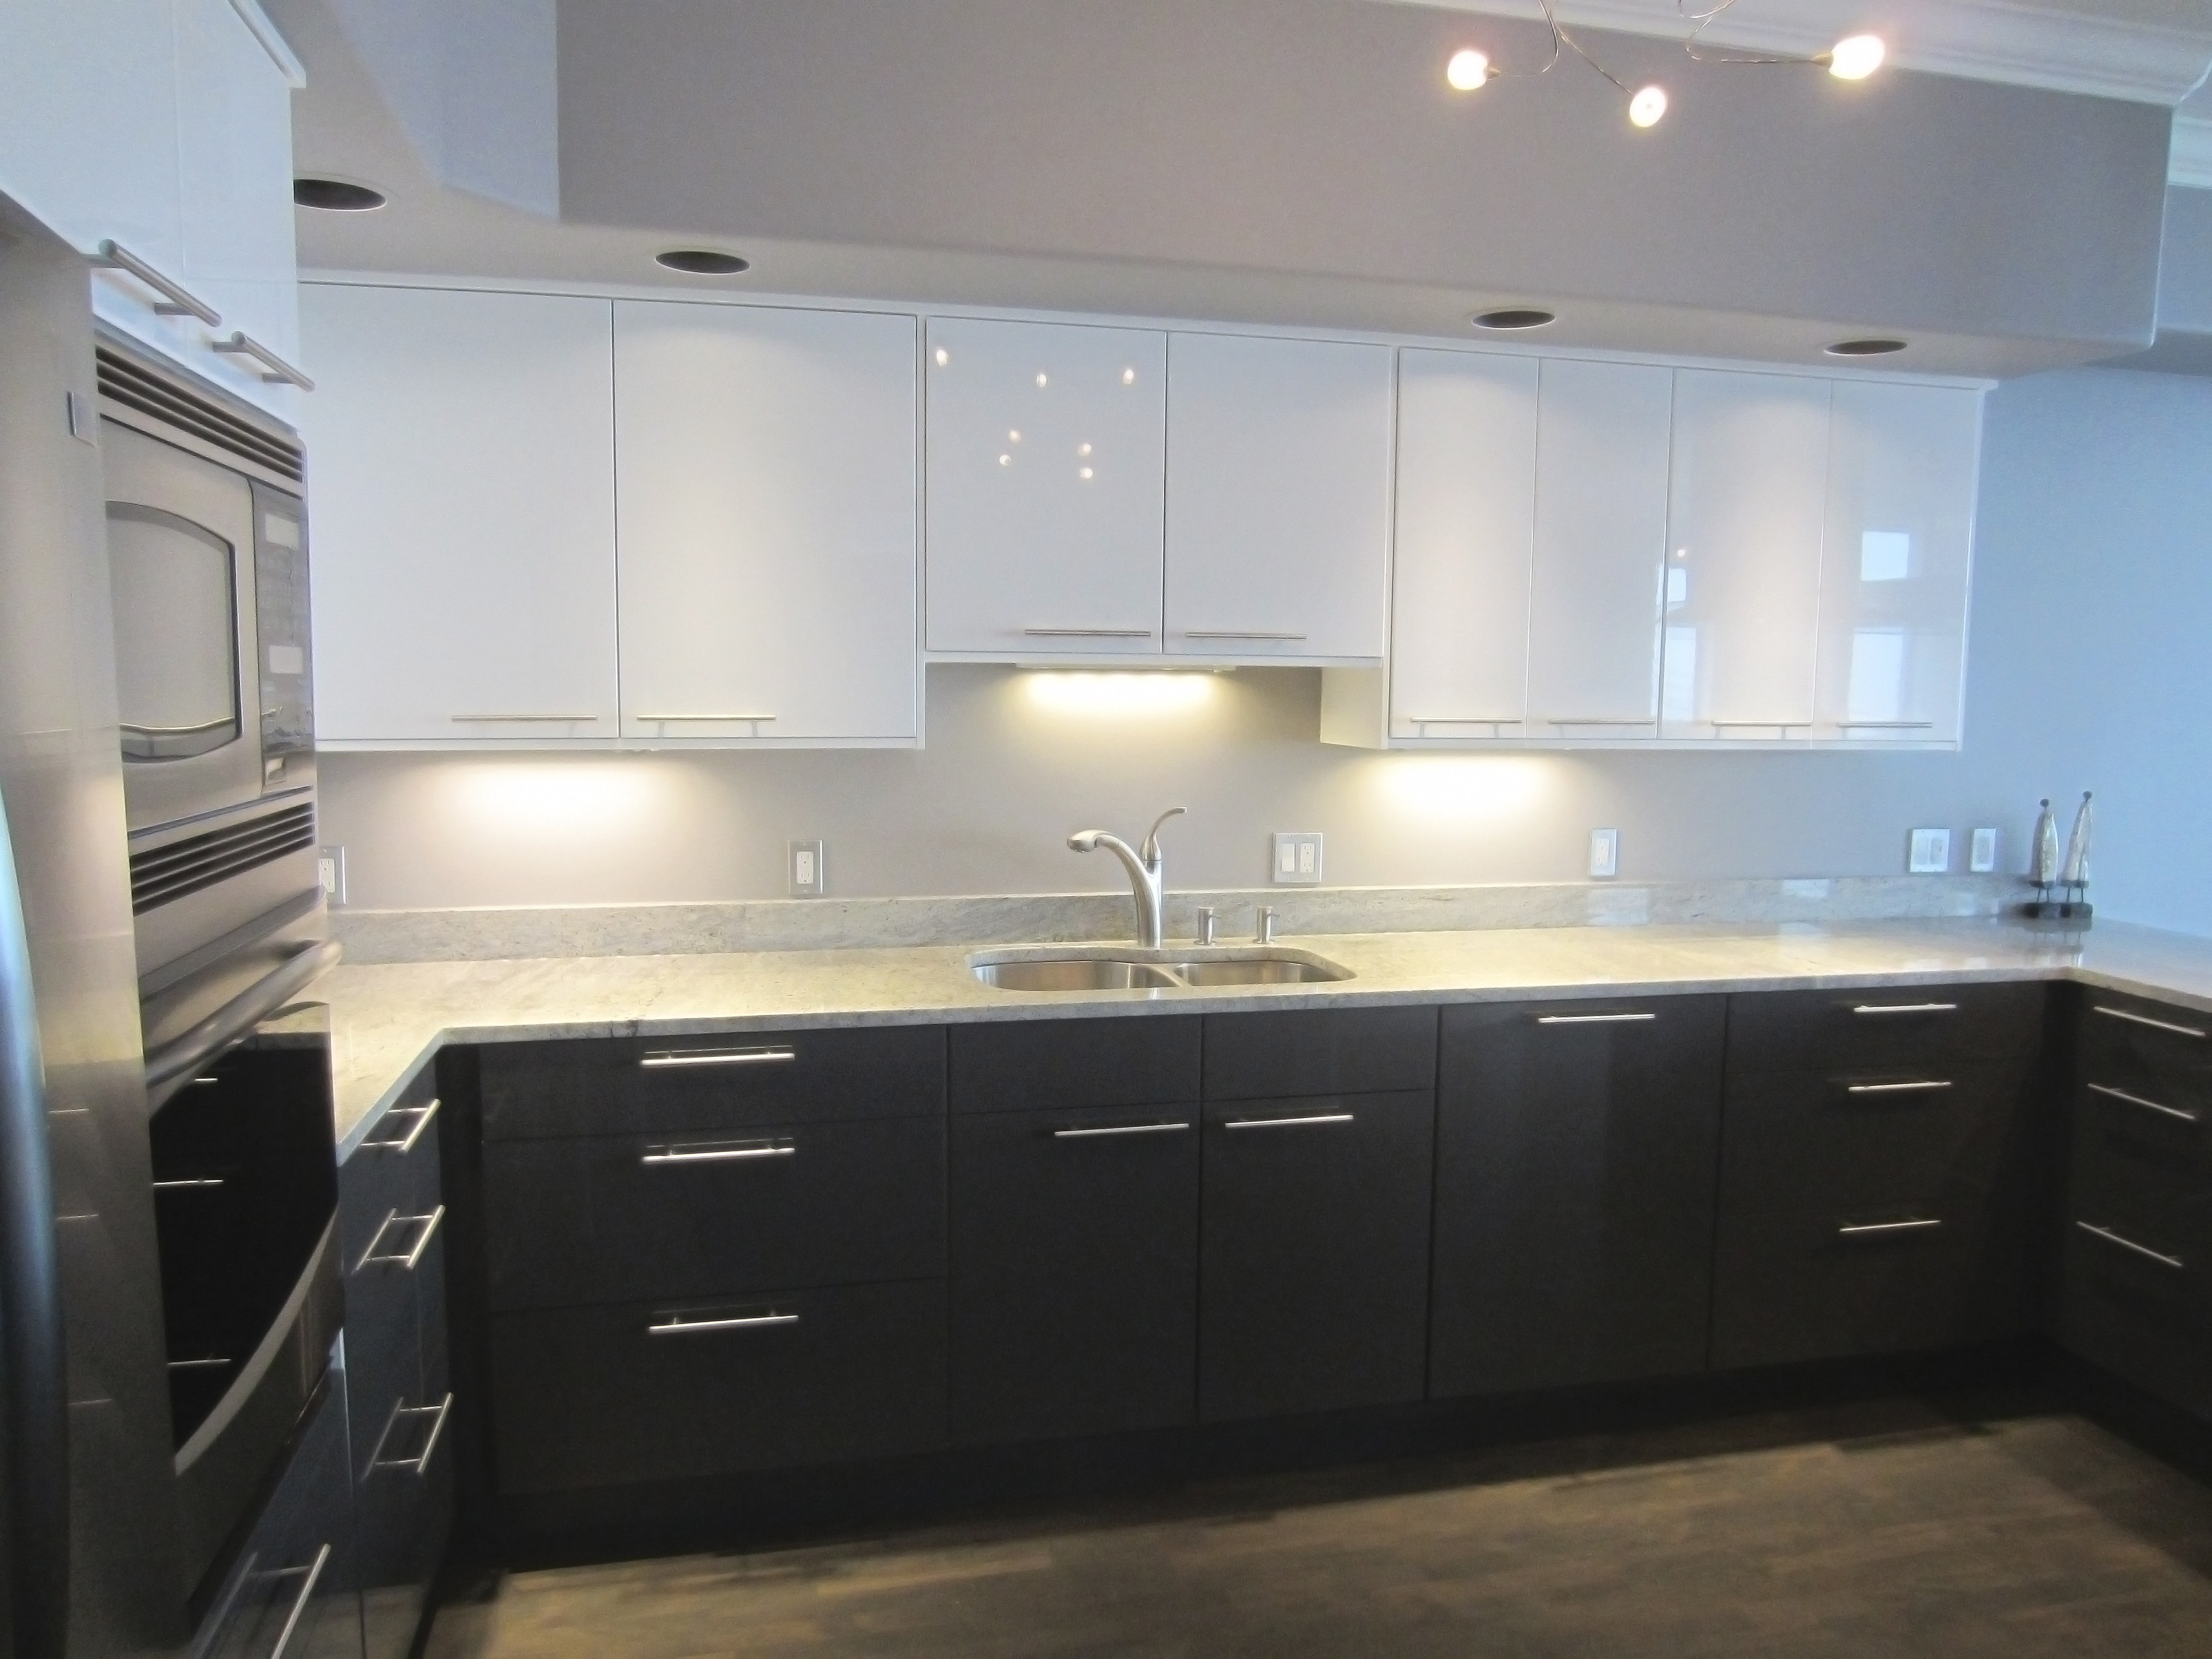 Specialist Worktop Installers, Fitters - Kitchen worktop fitters ...